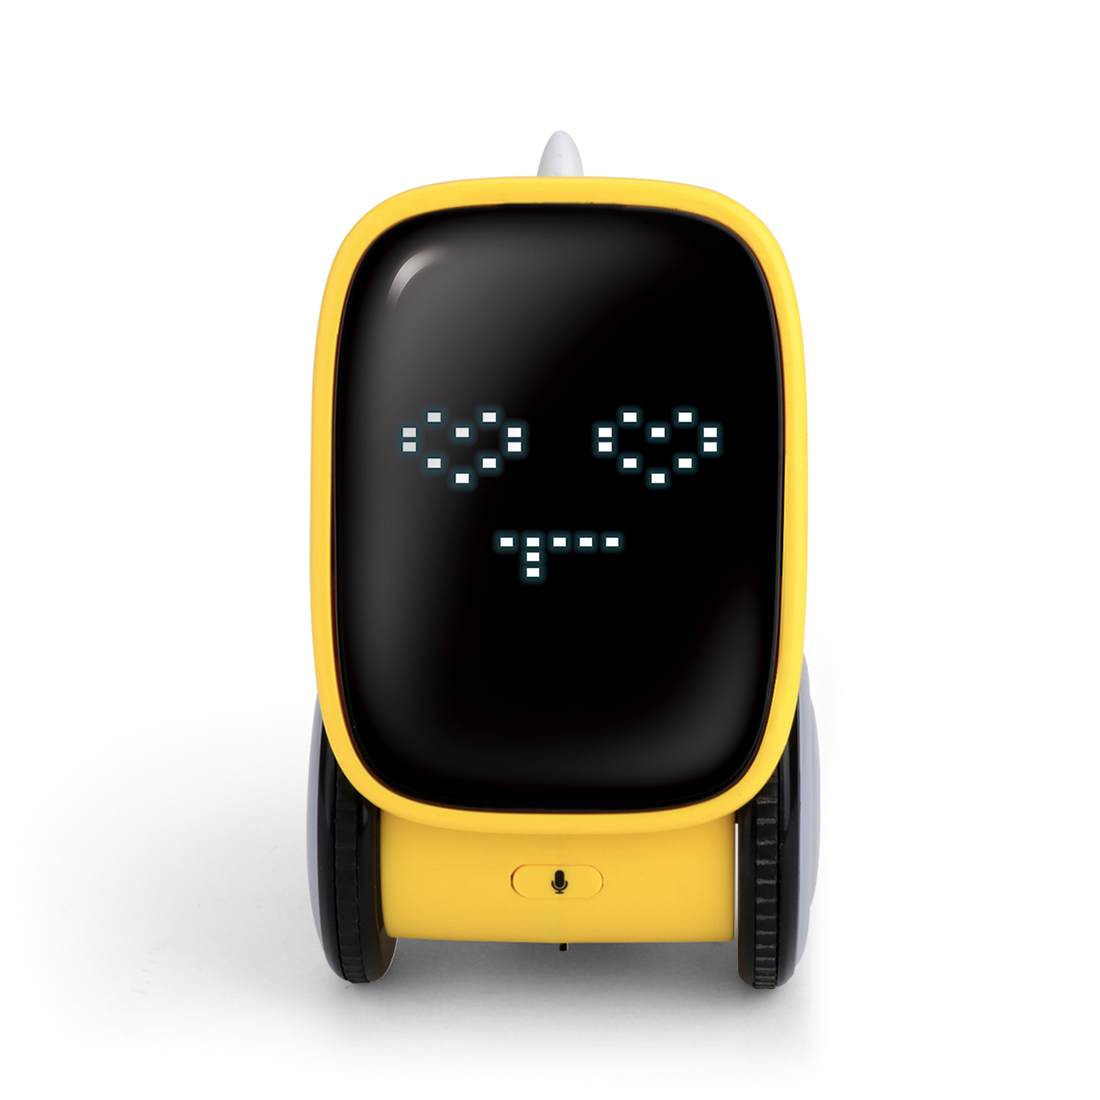 Smart Interactive Robot Gesture Voice Controlled Touch Sensor Voice Recording Robot Toy Gift - Yellow